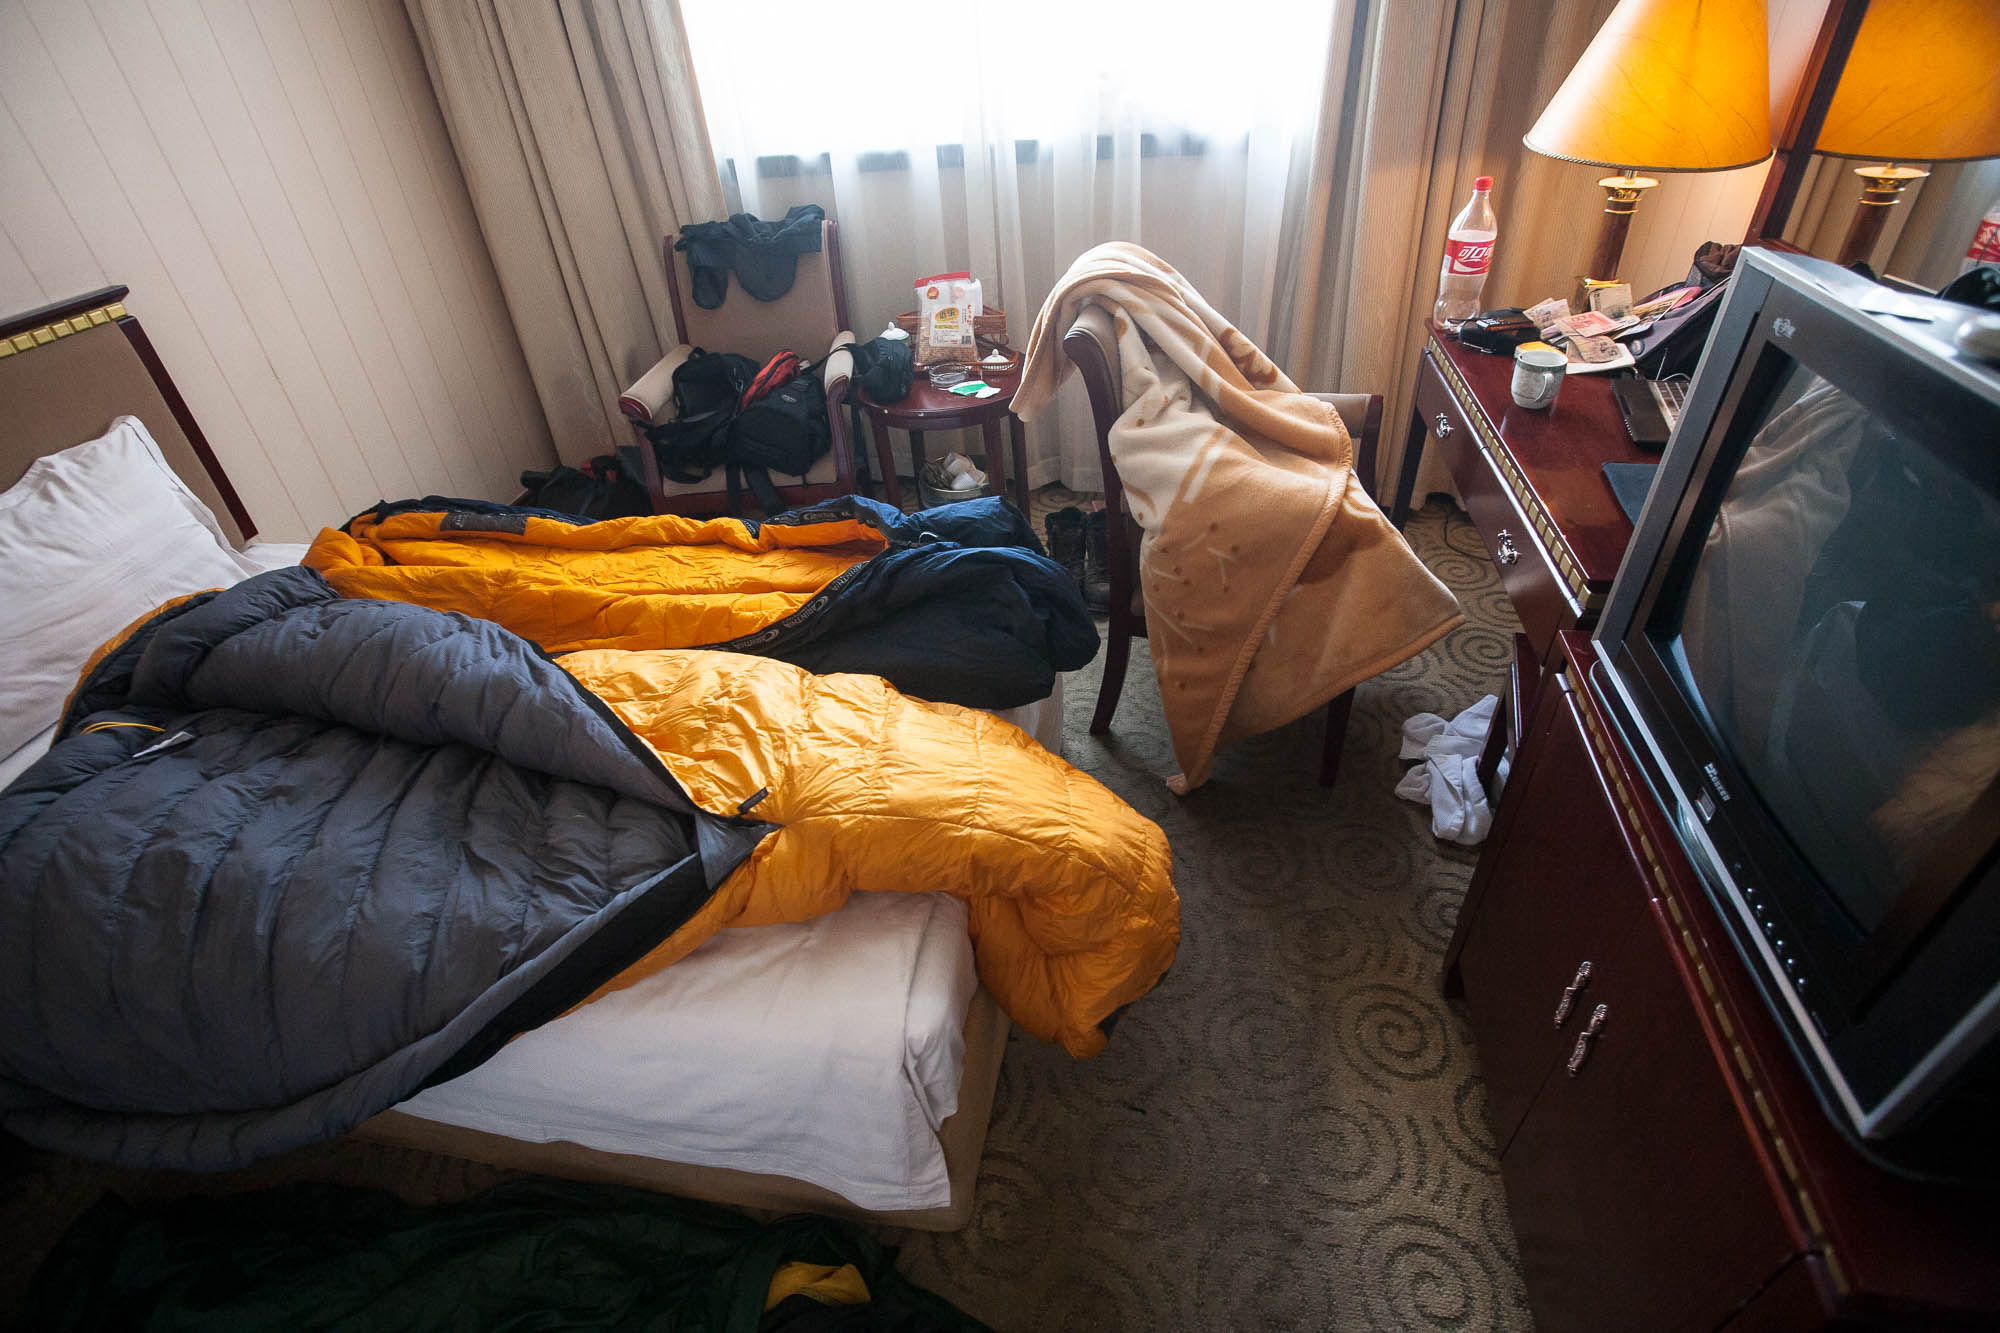 hotel room in Linyi